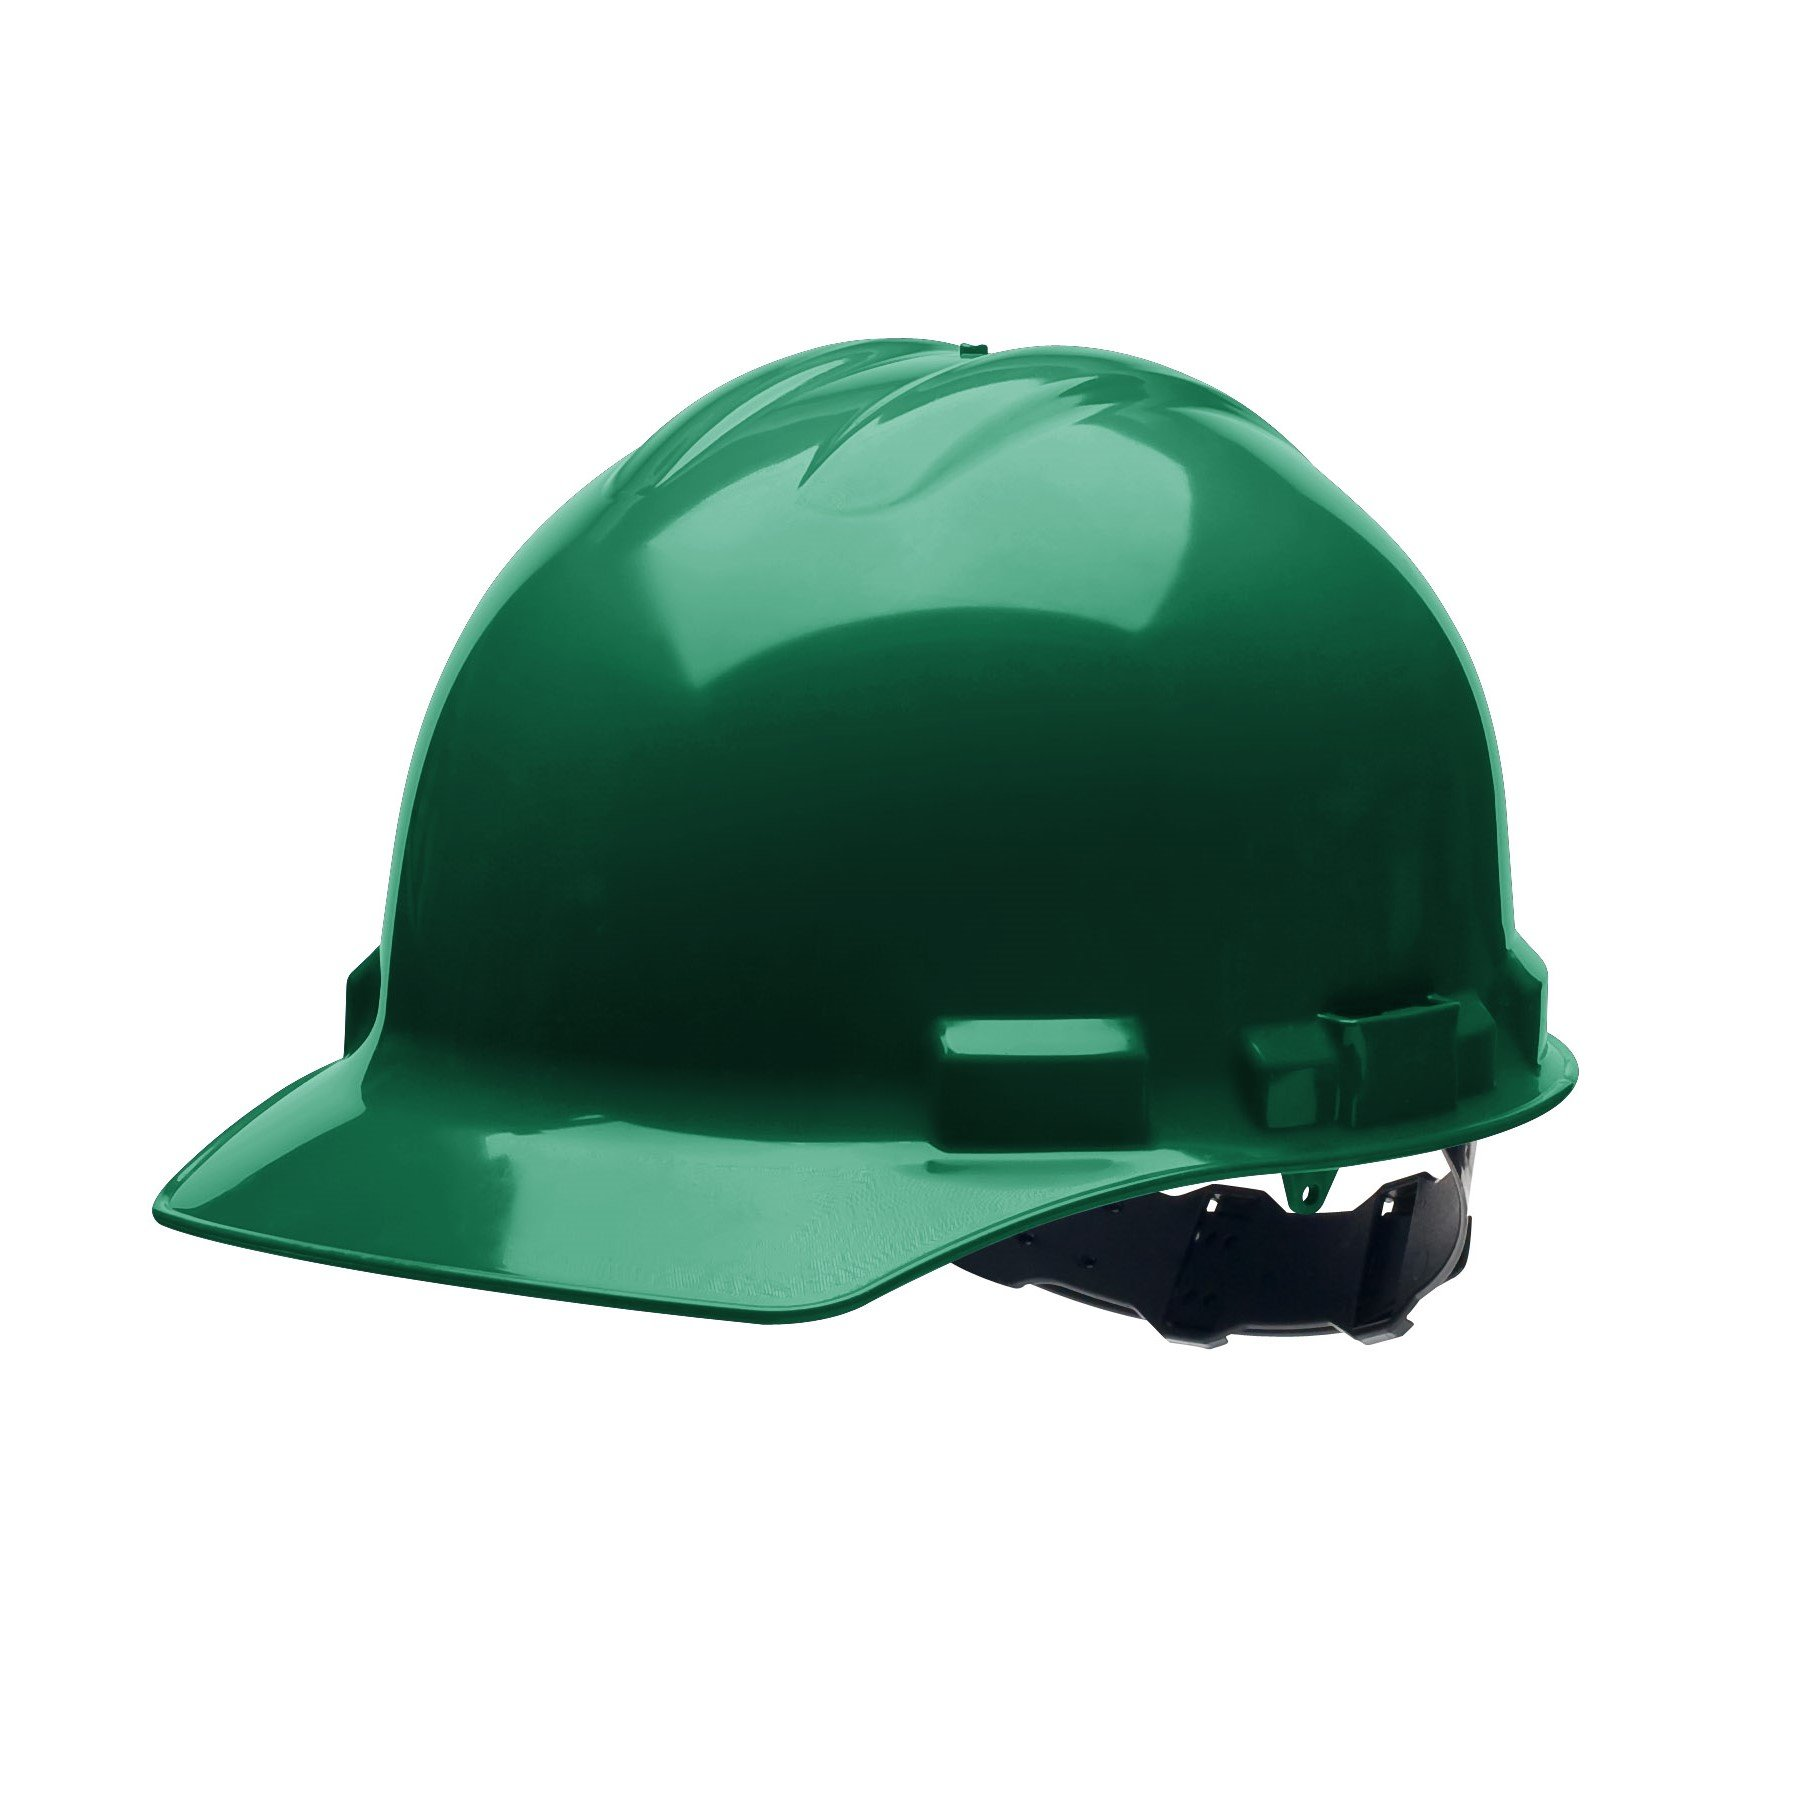 Cordova Safety Products H24R9 Duo Cap Style Hard Hat, Forest Green